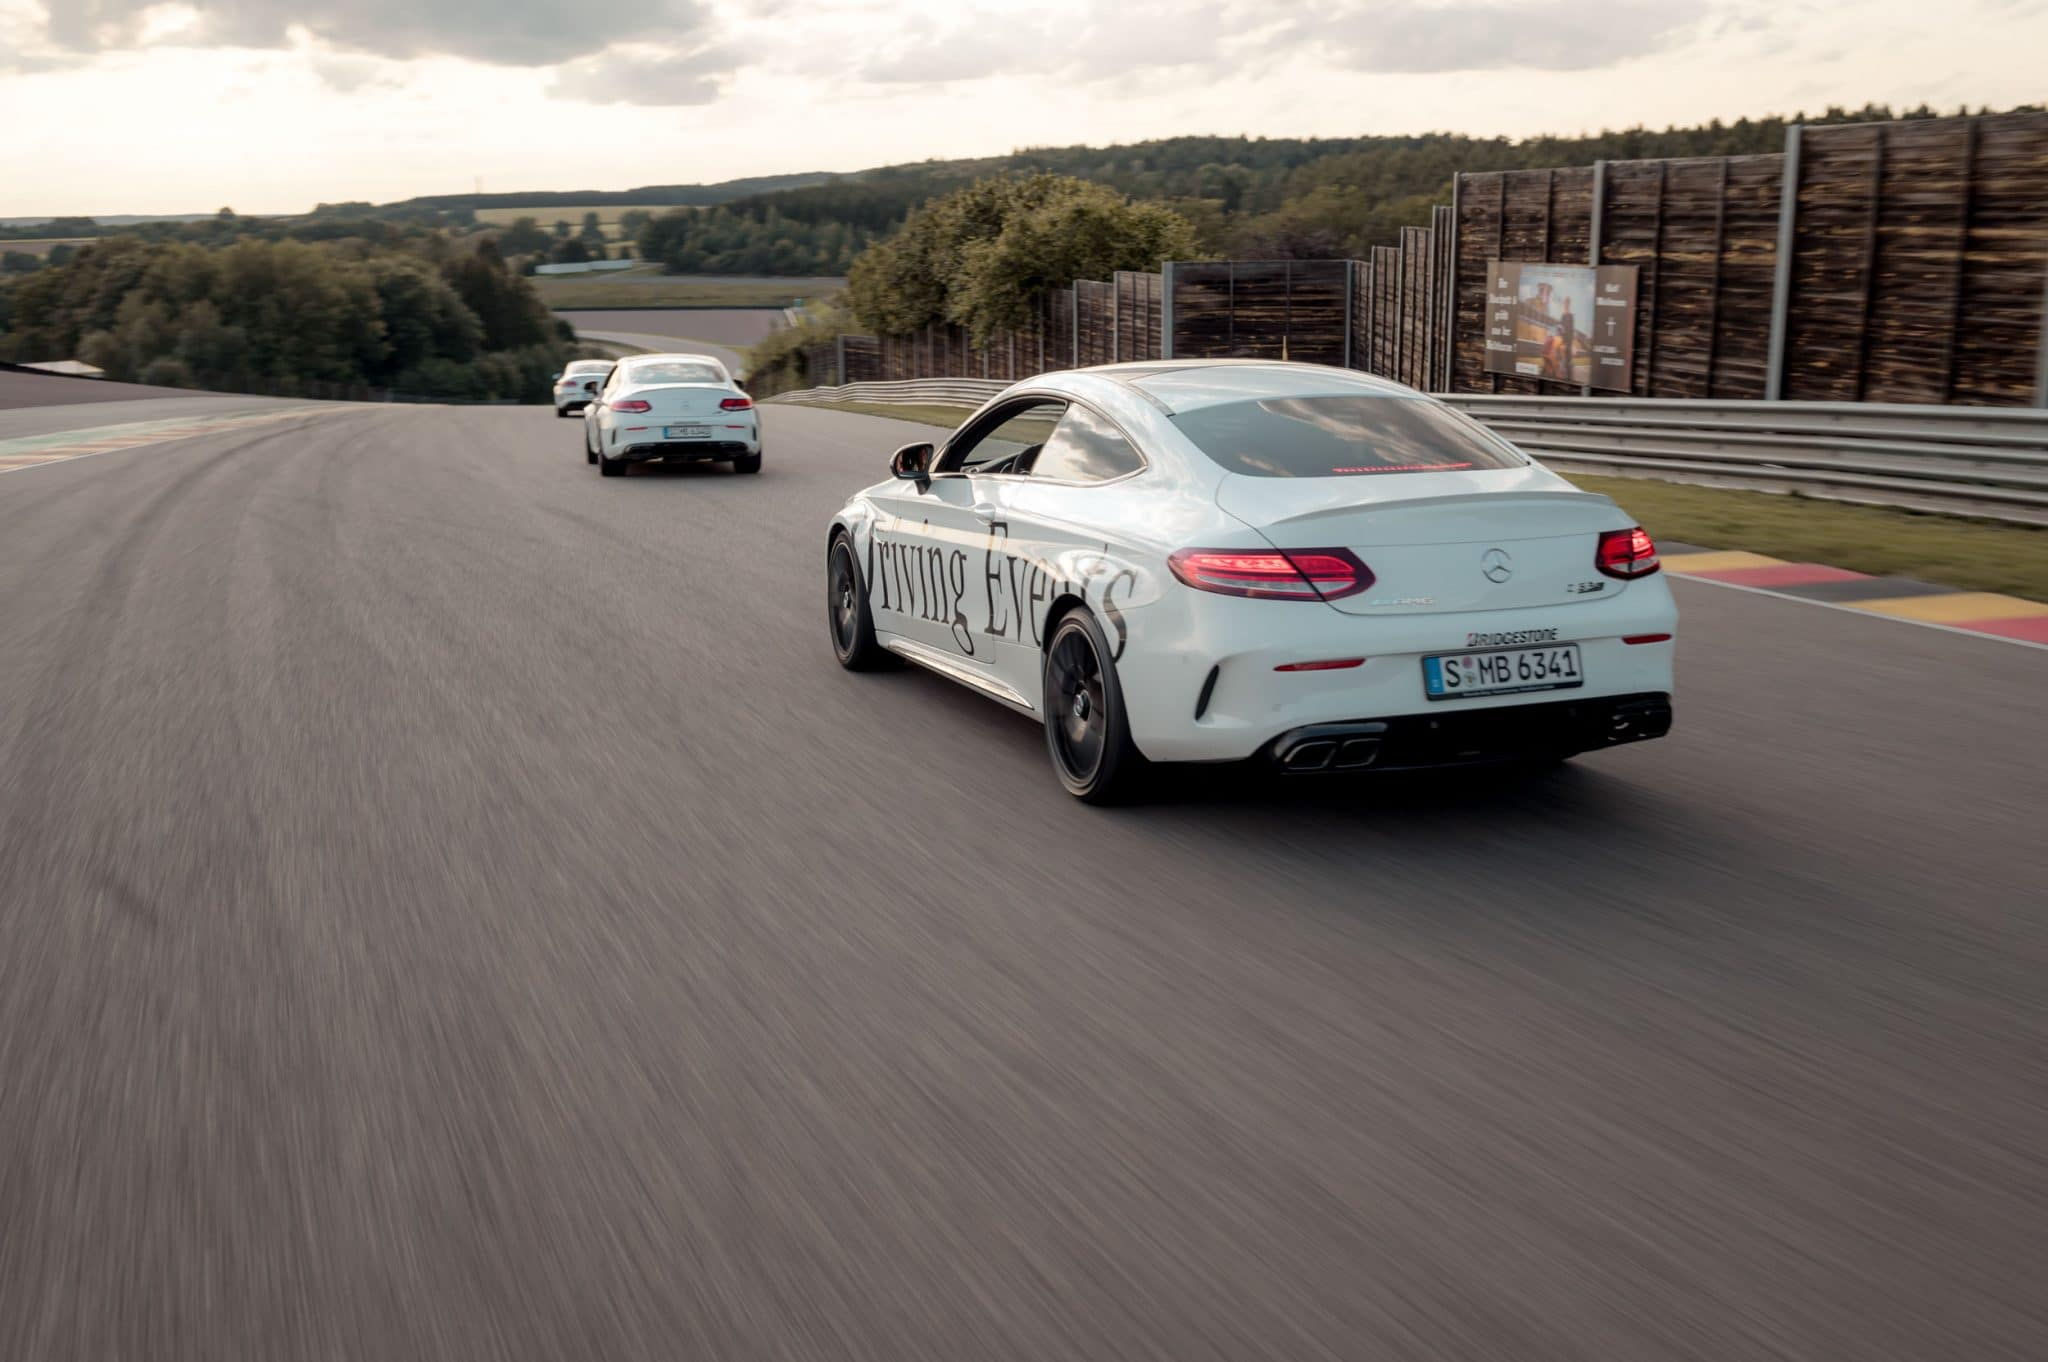 Mercedes Benz Driving Events Sachsenring 11. September 2020 729 scaled |